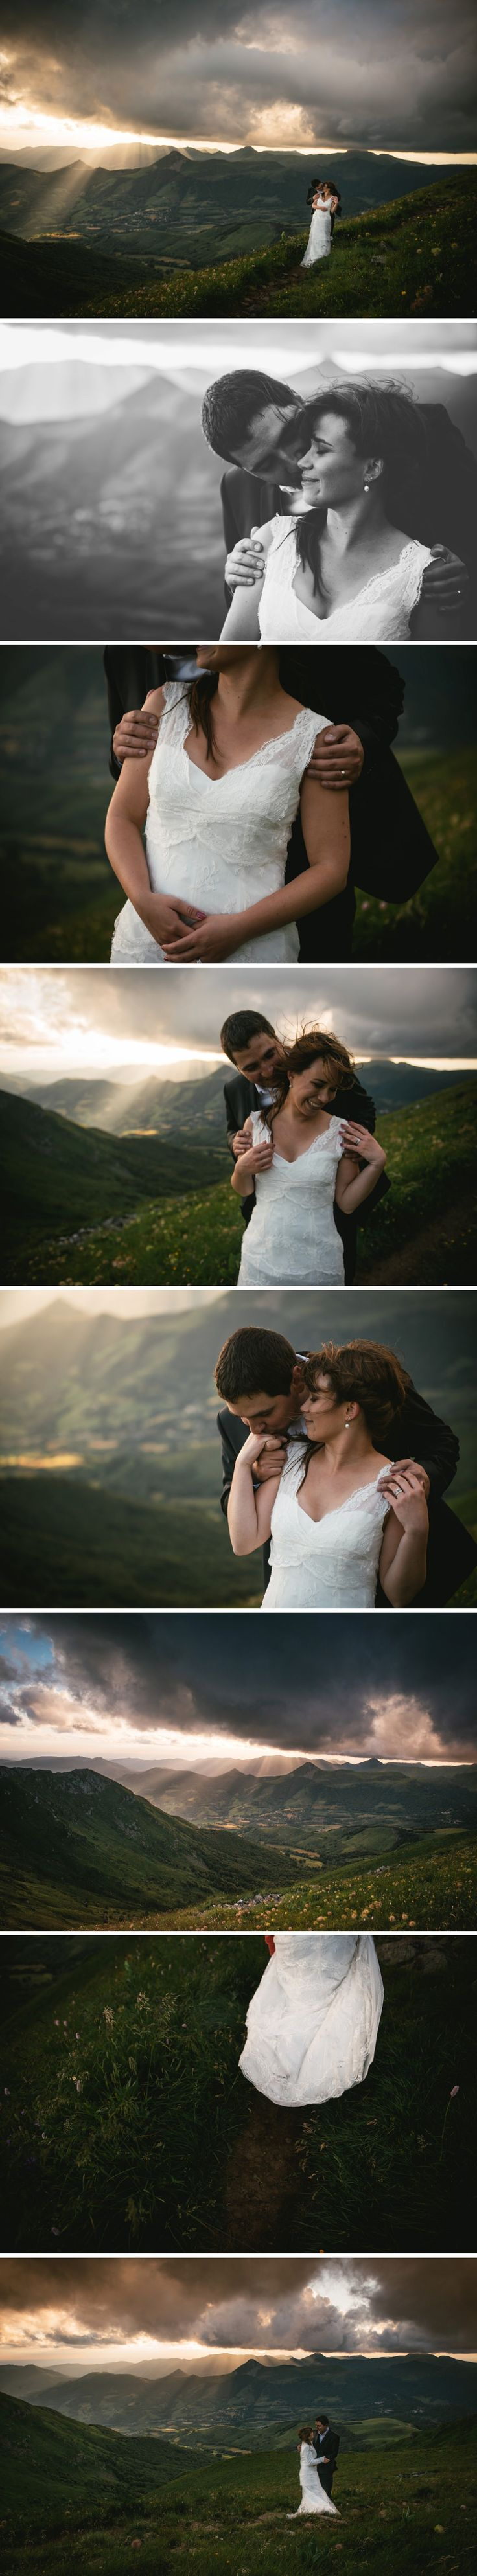 Couple getting married in the wind and rain on top of the Plomb du Cantal - Zephyr & Luna photography